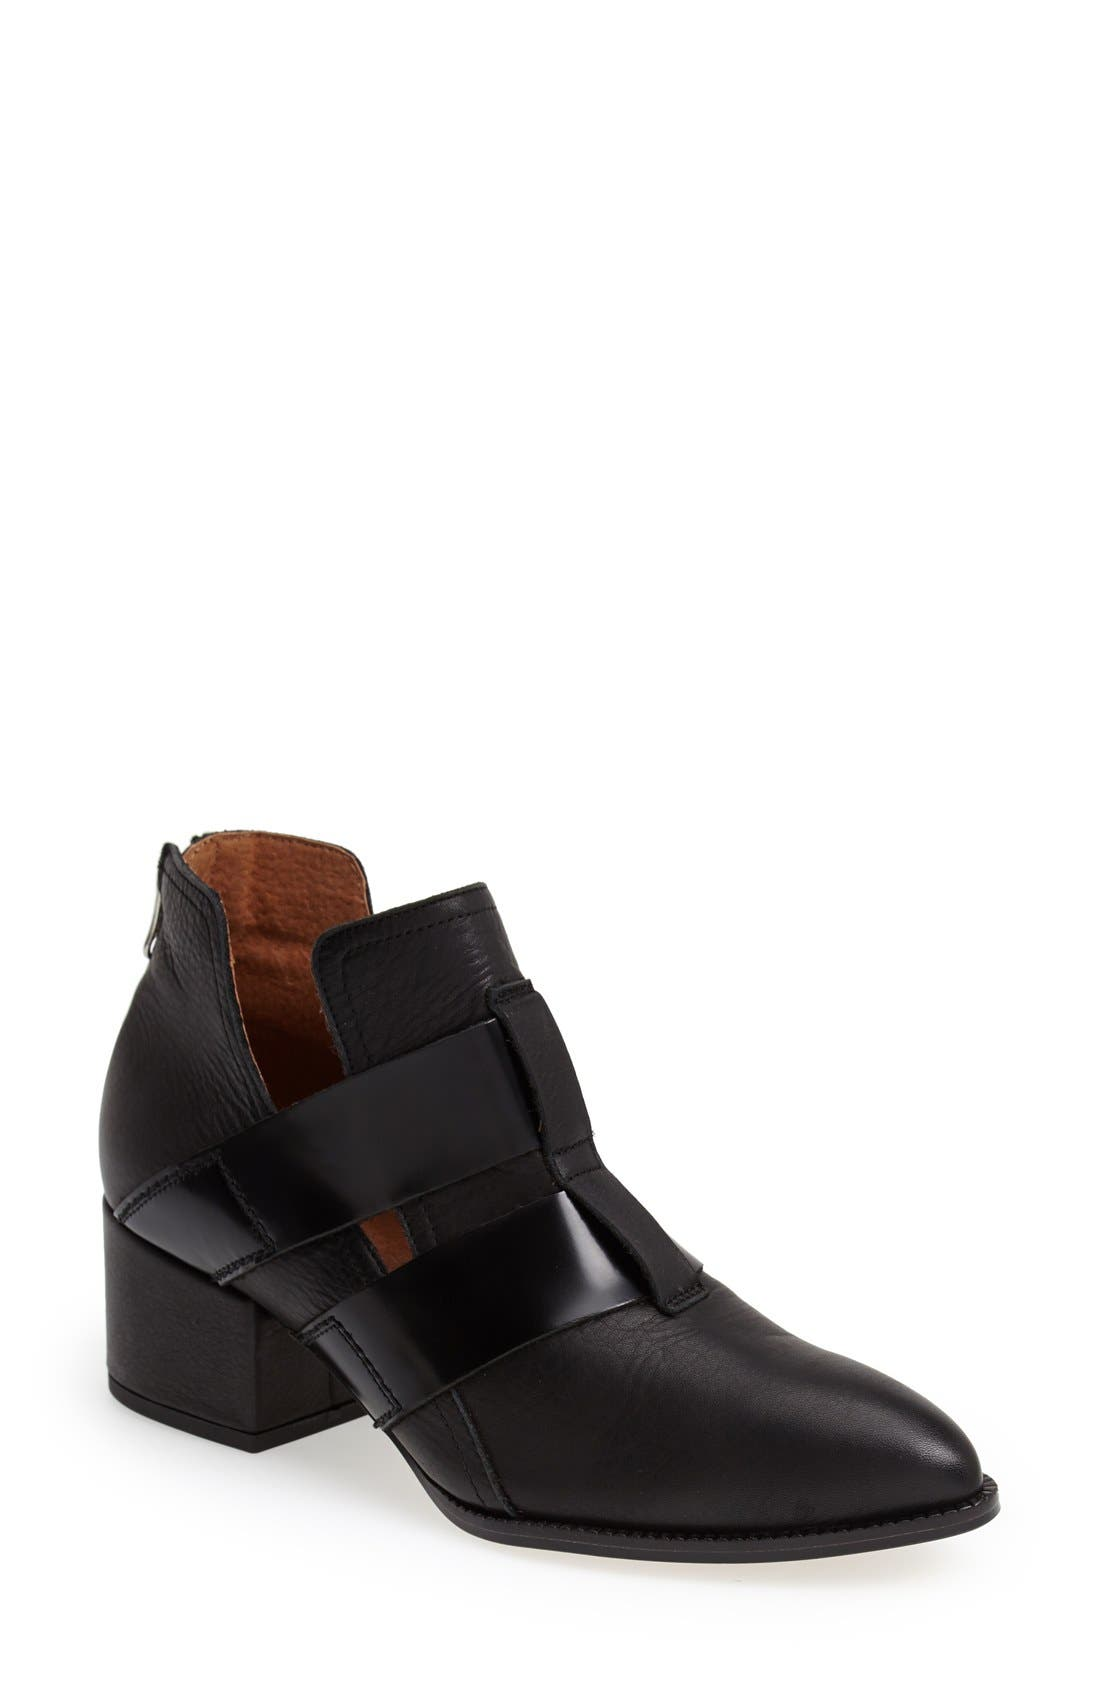 SIXTYSEVEN 'Alice' Pointy Toe Leather Ankle Bootie, Main, color, 001